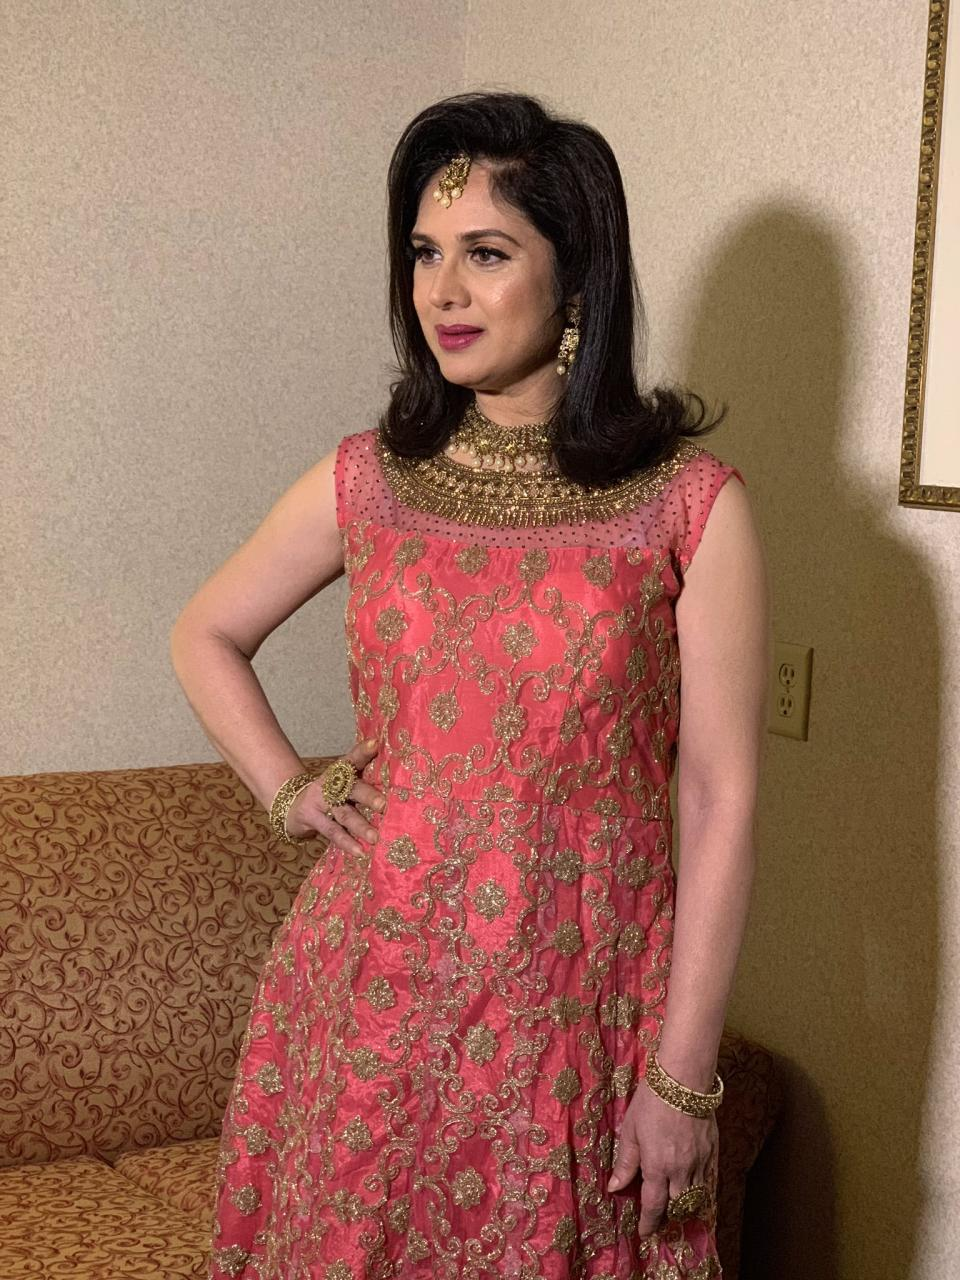 She often joins her students in their performances at fundraisers and charity events. They also performed at the American Association of Physicians of Indian Origin and all the funds collected were channeled toward various philanthropic causes.